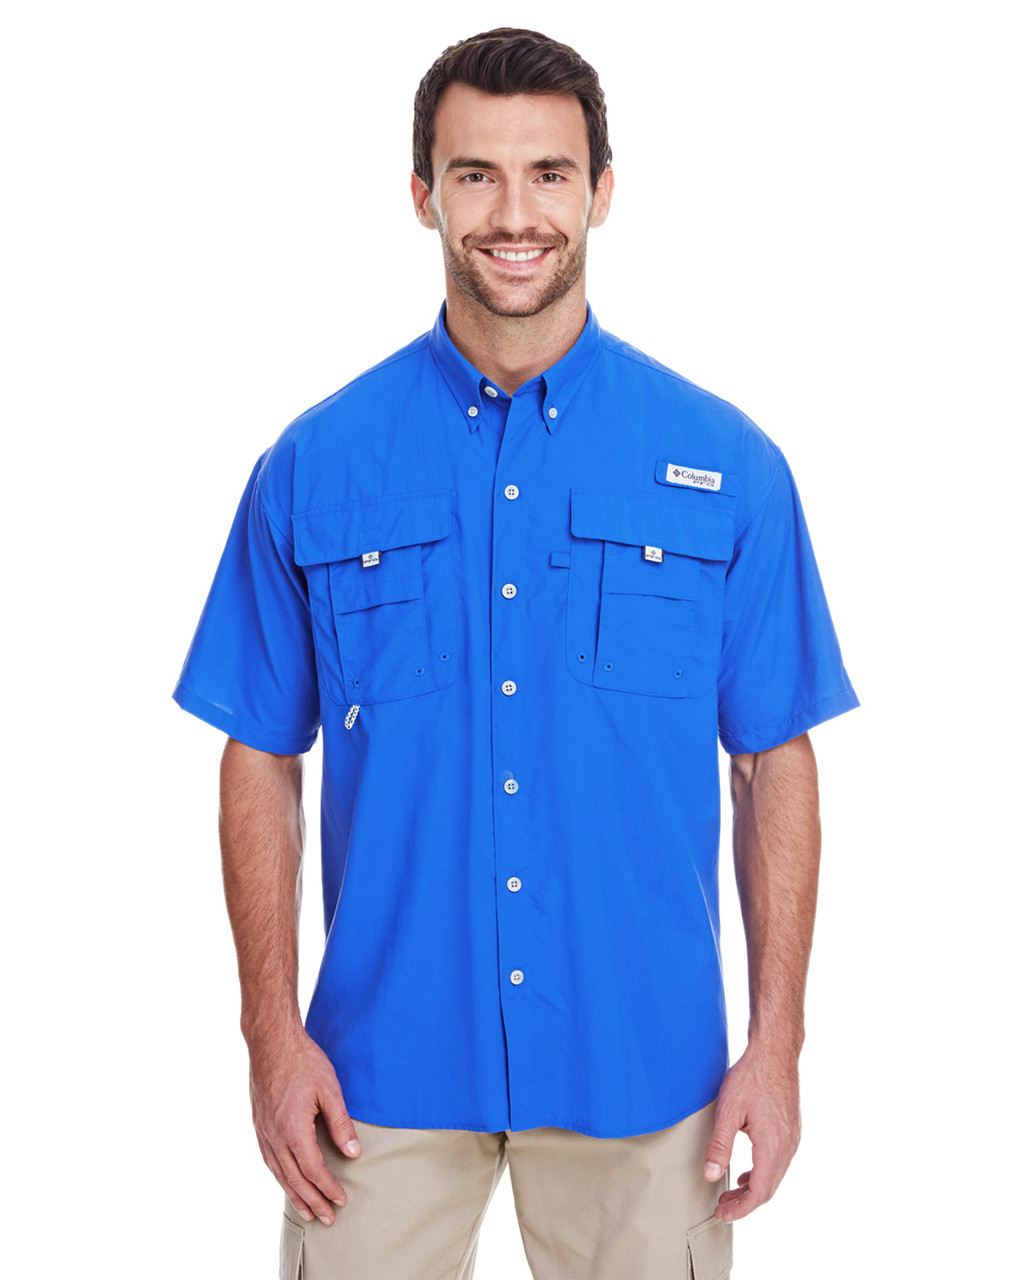 Vivid Blue - 7047 Columbia Men's Bahama™ II Short-Sleeve Shirt | BlankClothing.ca